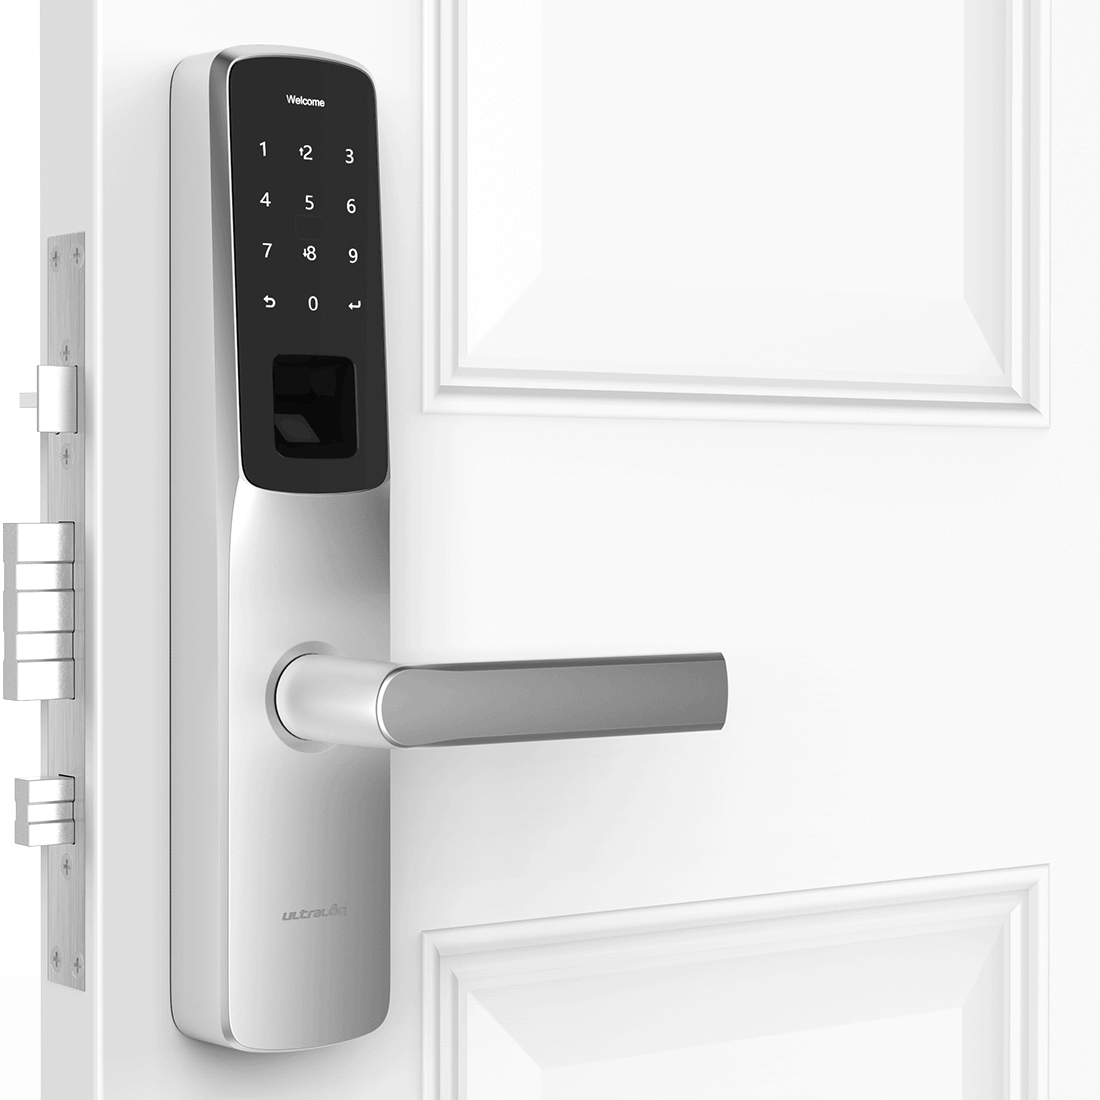 Ultraloq® | U-tec - Fingerprint and Touchscreen Smart Lock